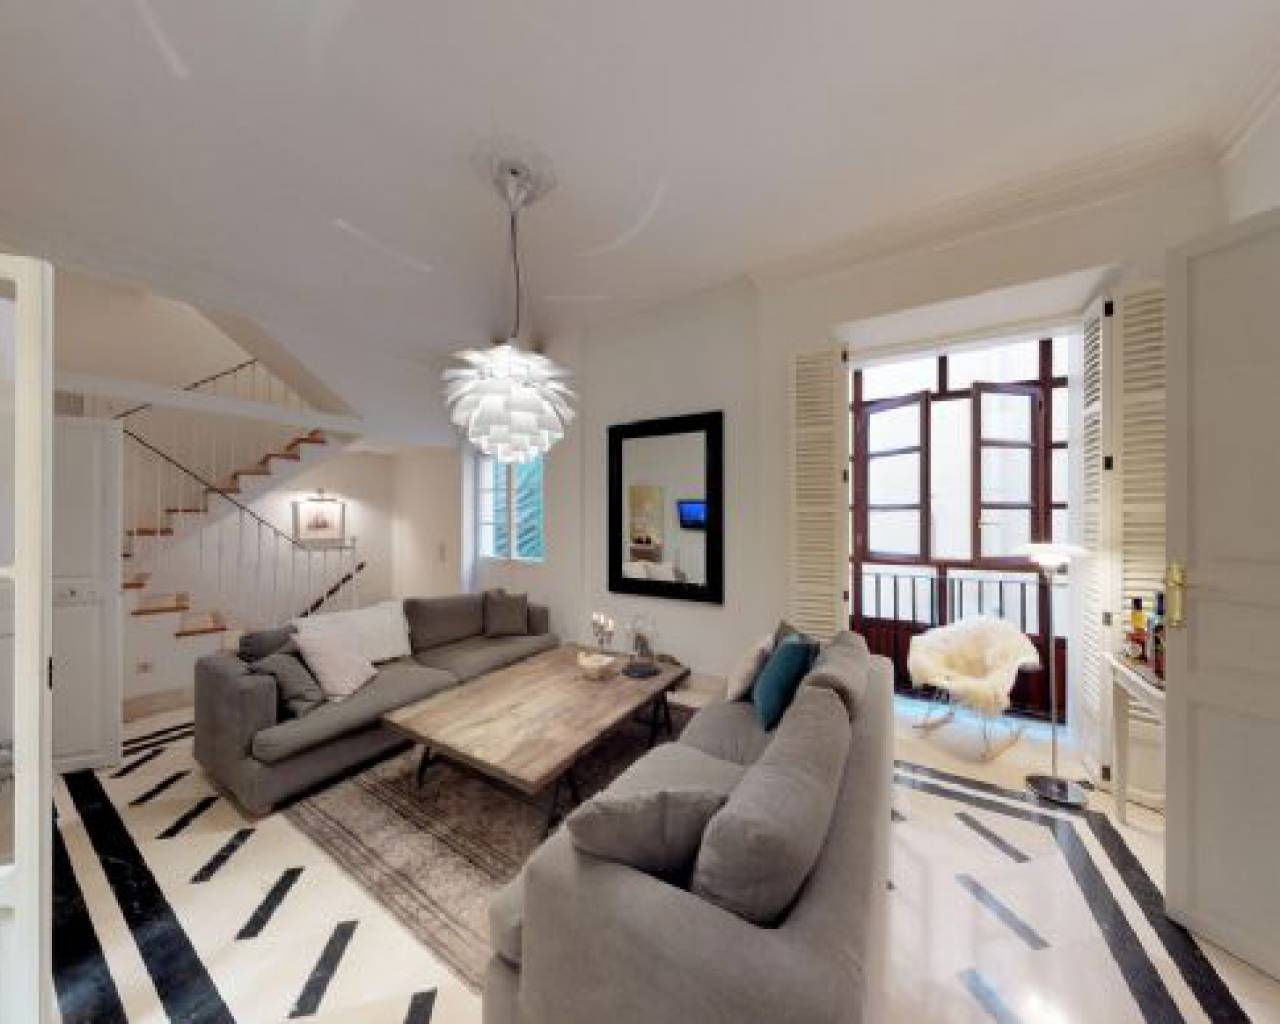 5 Bedroom Modern Town House in Sale in Old Town Of Palma